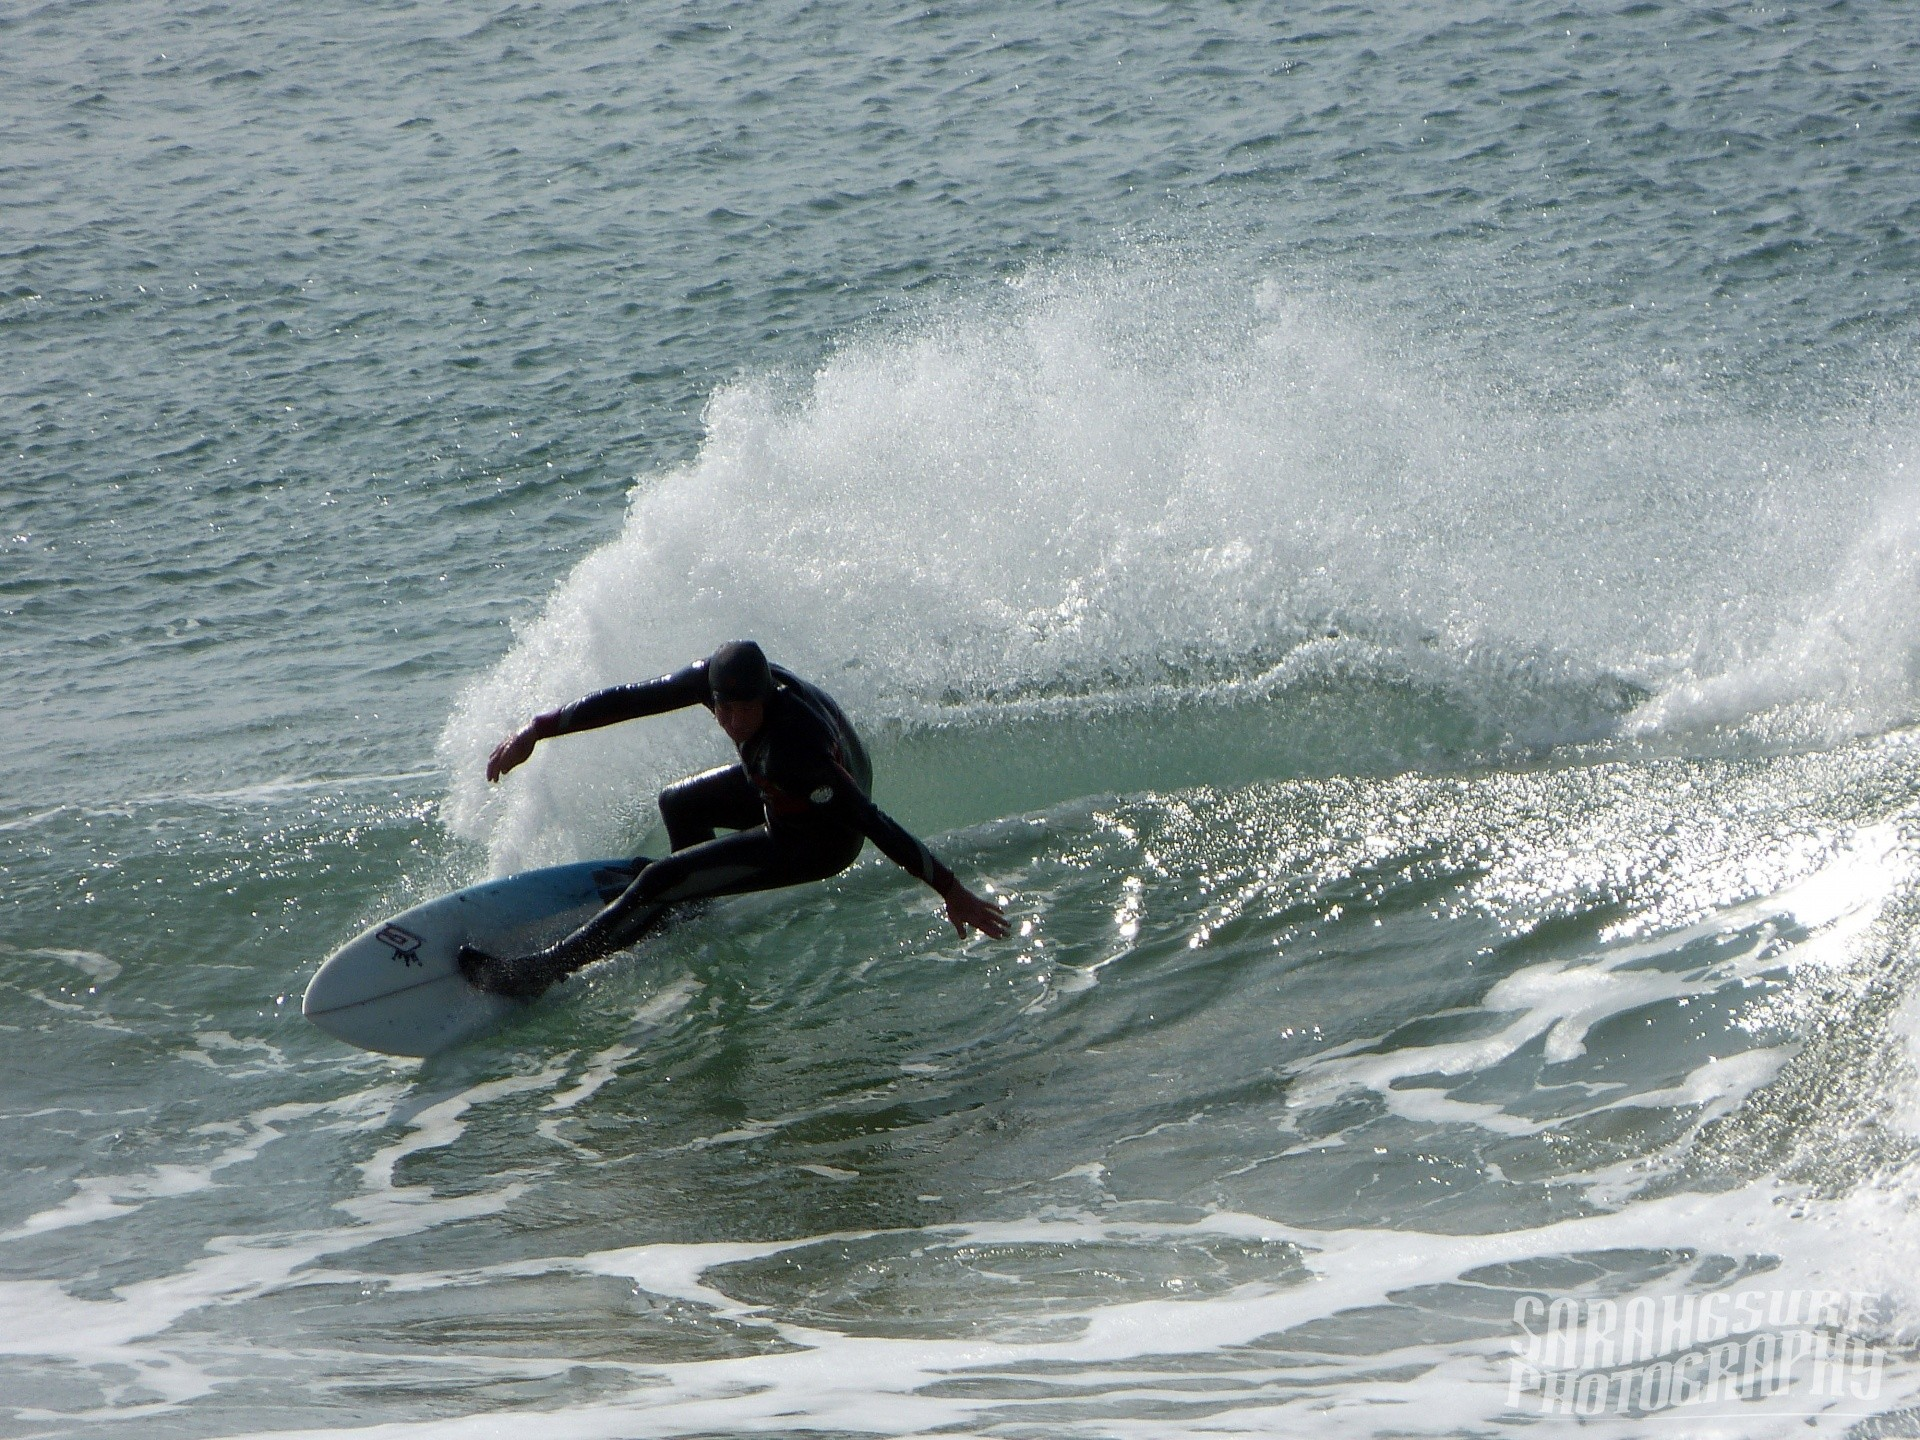 SARAHG SURF PHOTOGRAPHY's photo of Crantock